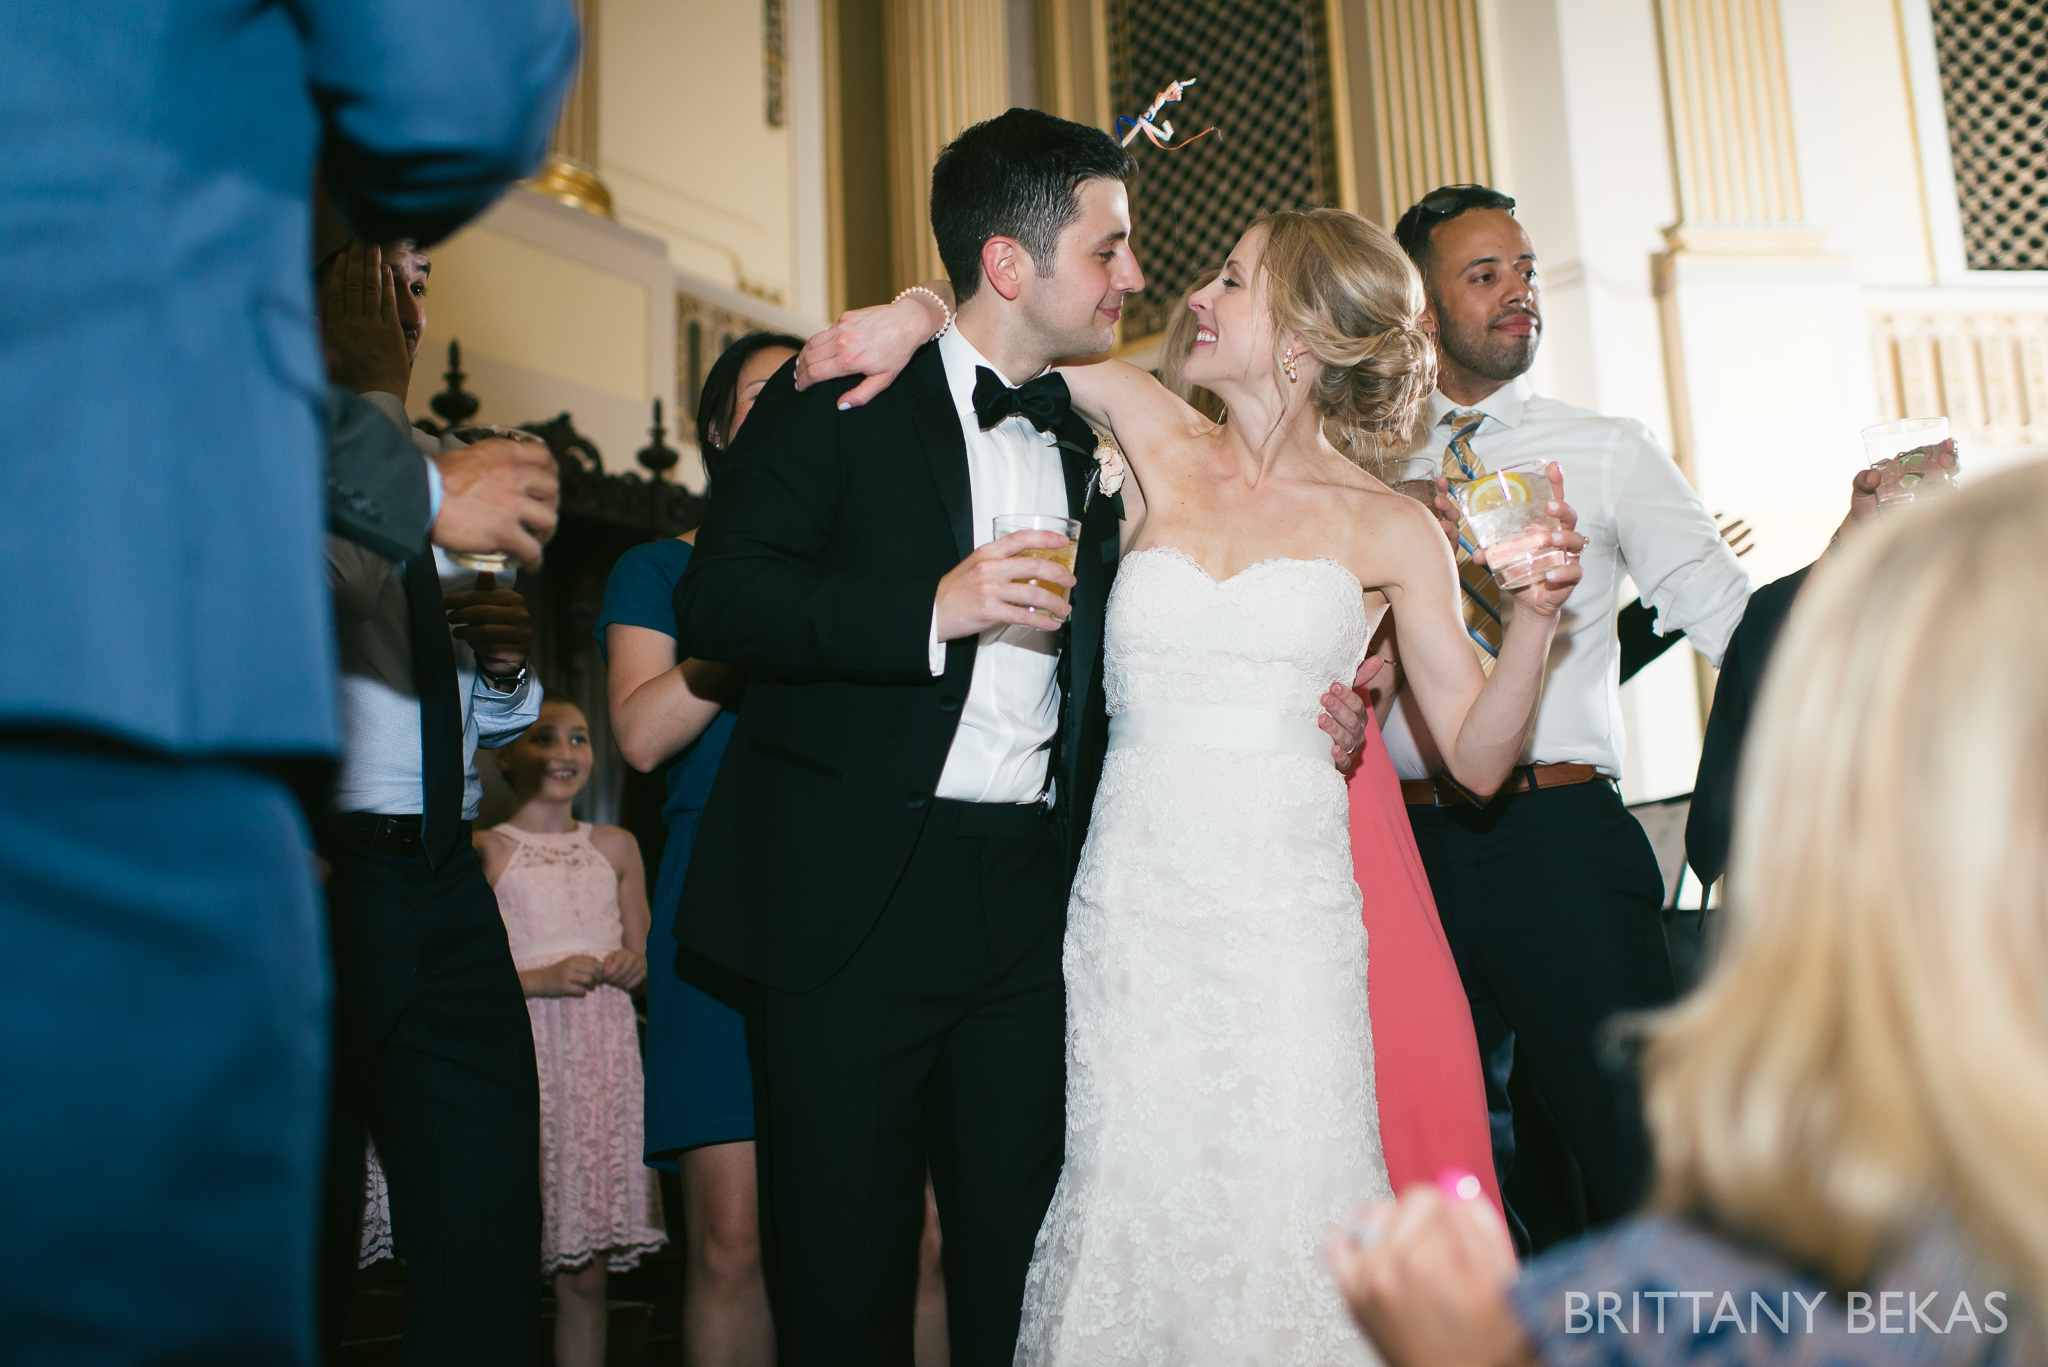 The Murphy Wedding Photos - Brittany Bekas Photography_0055